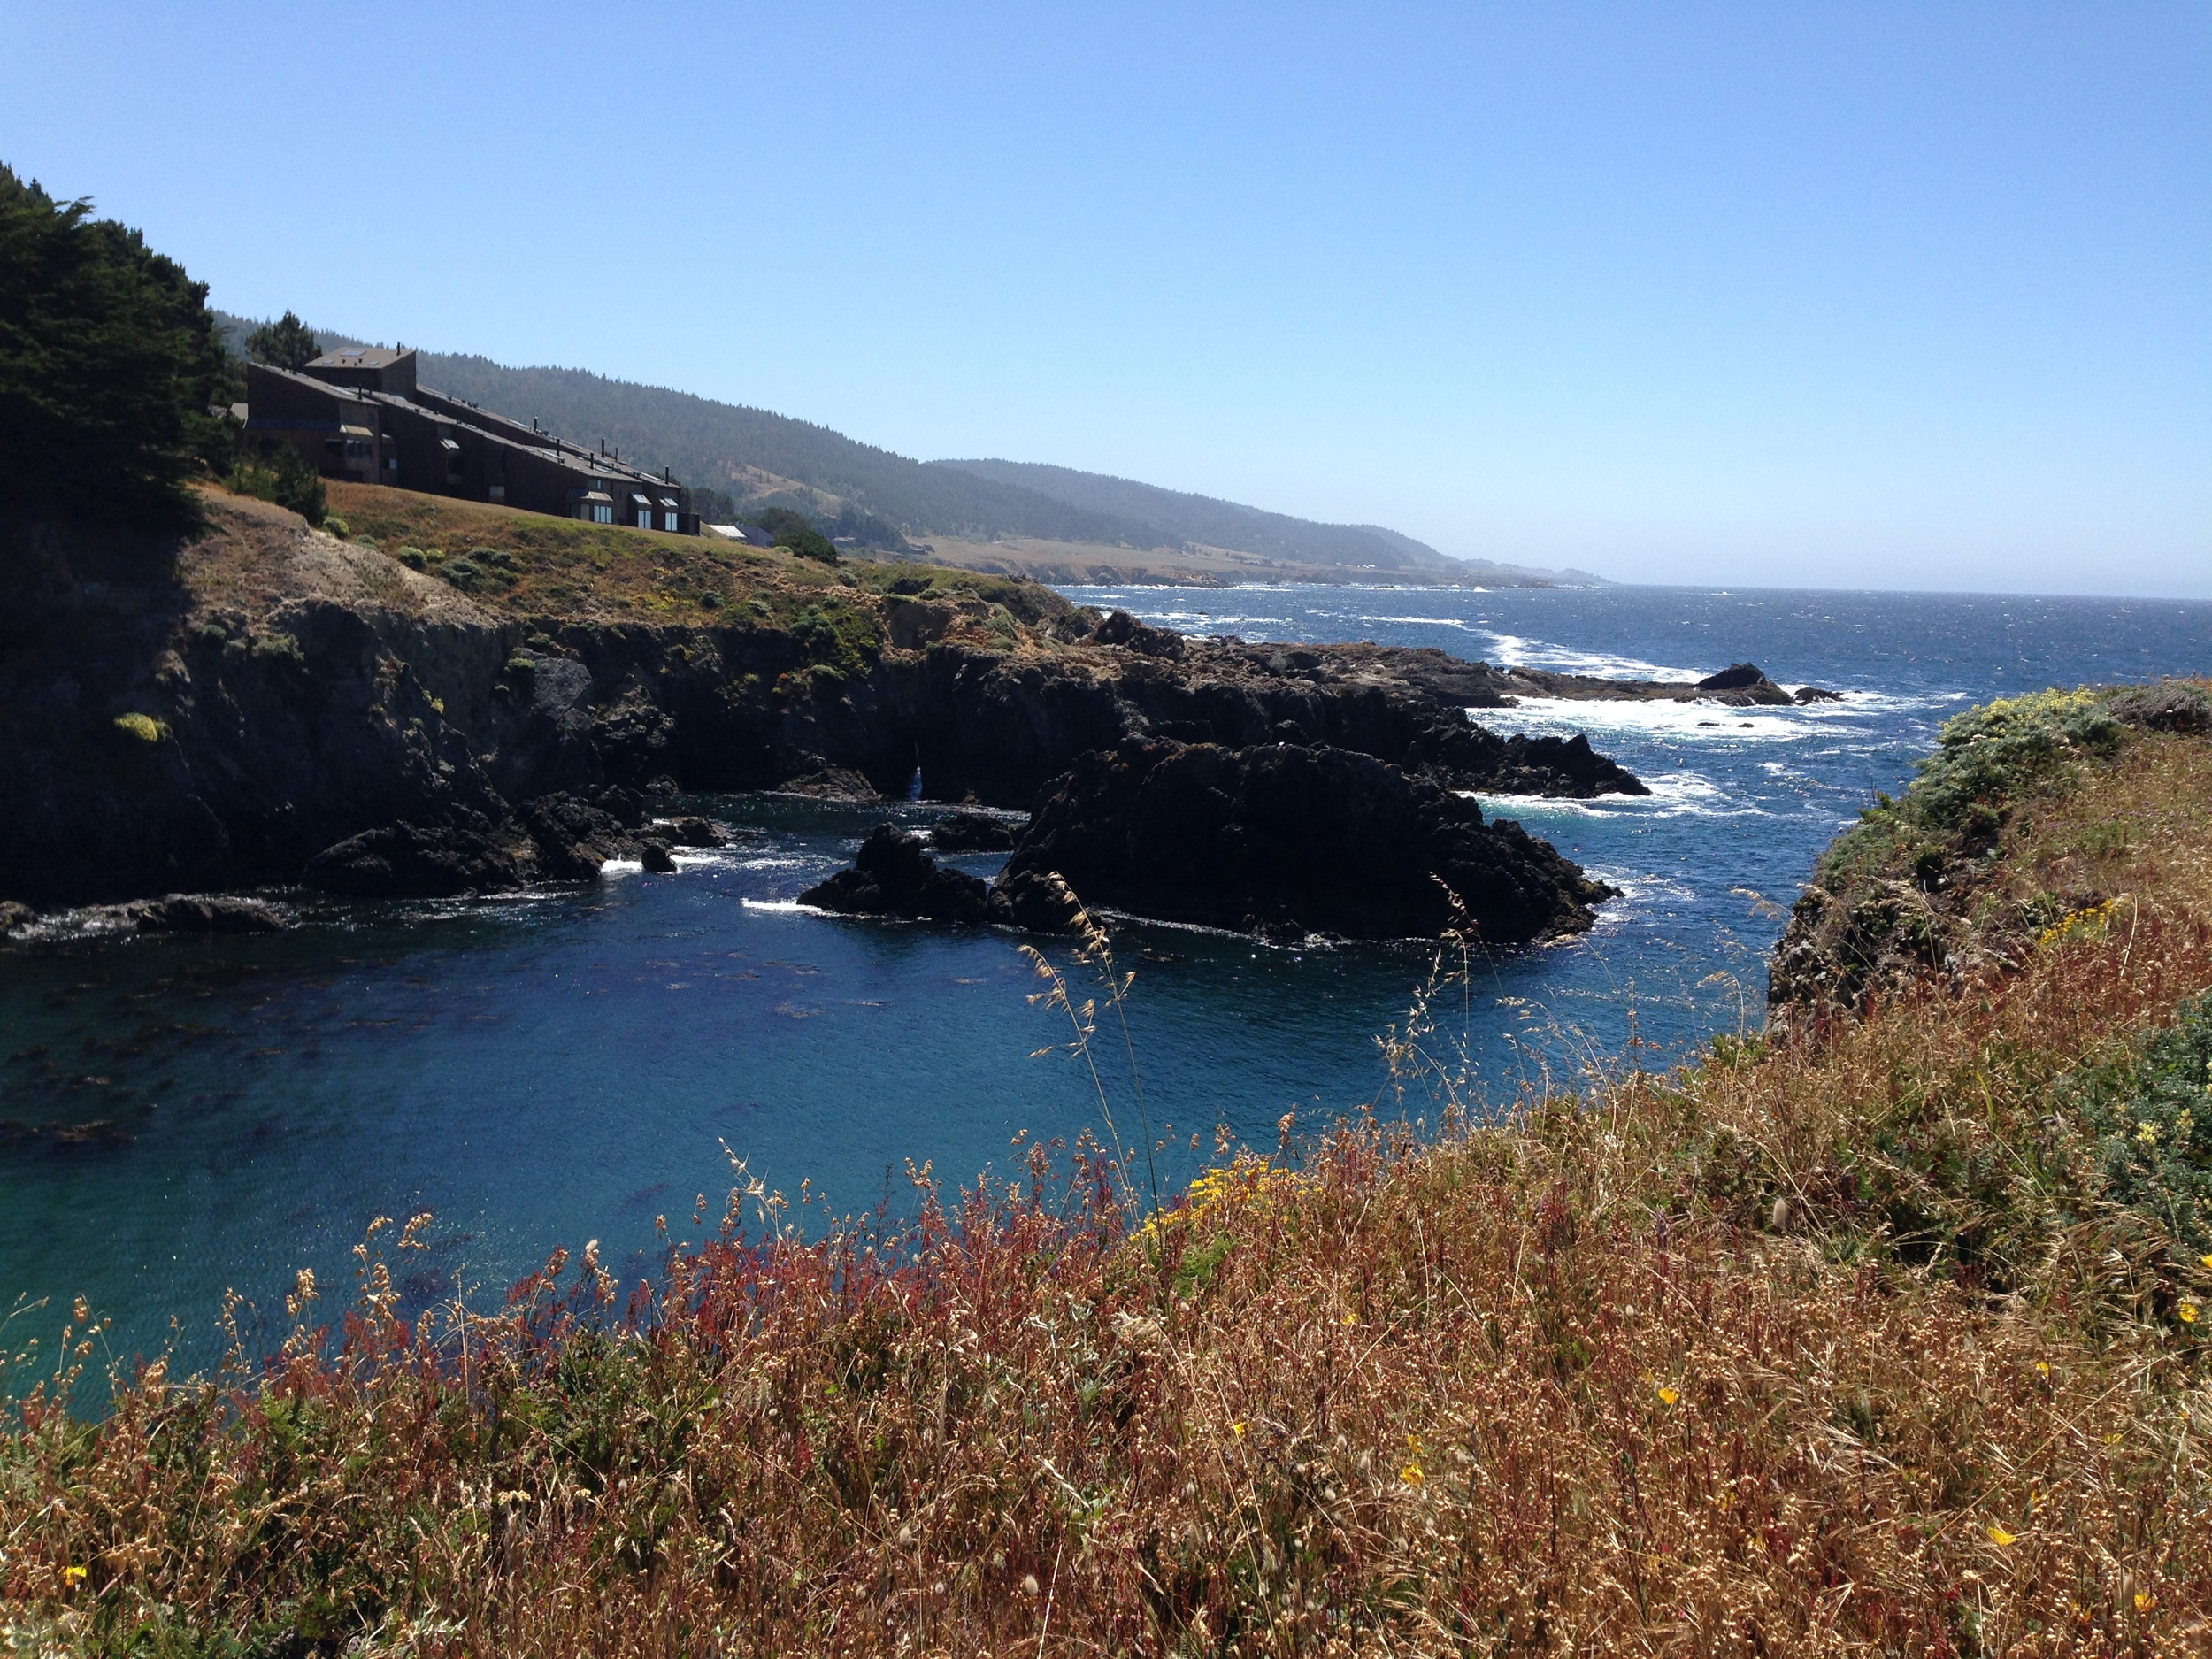 Near the Sea Ranch Lodge